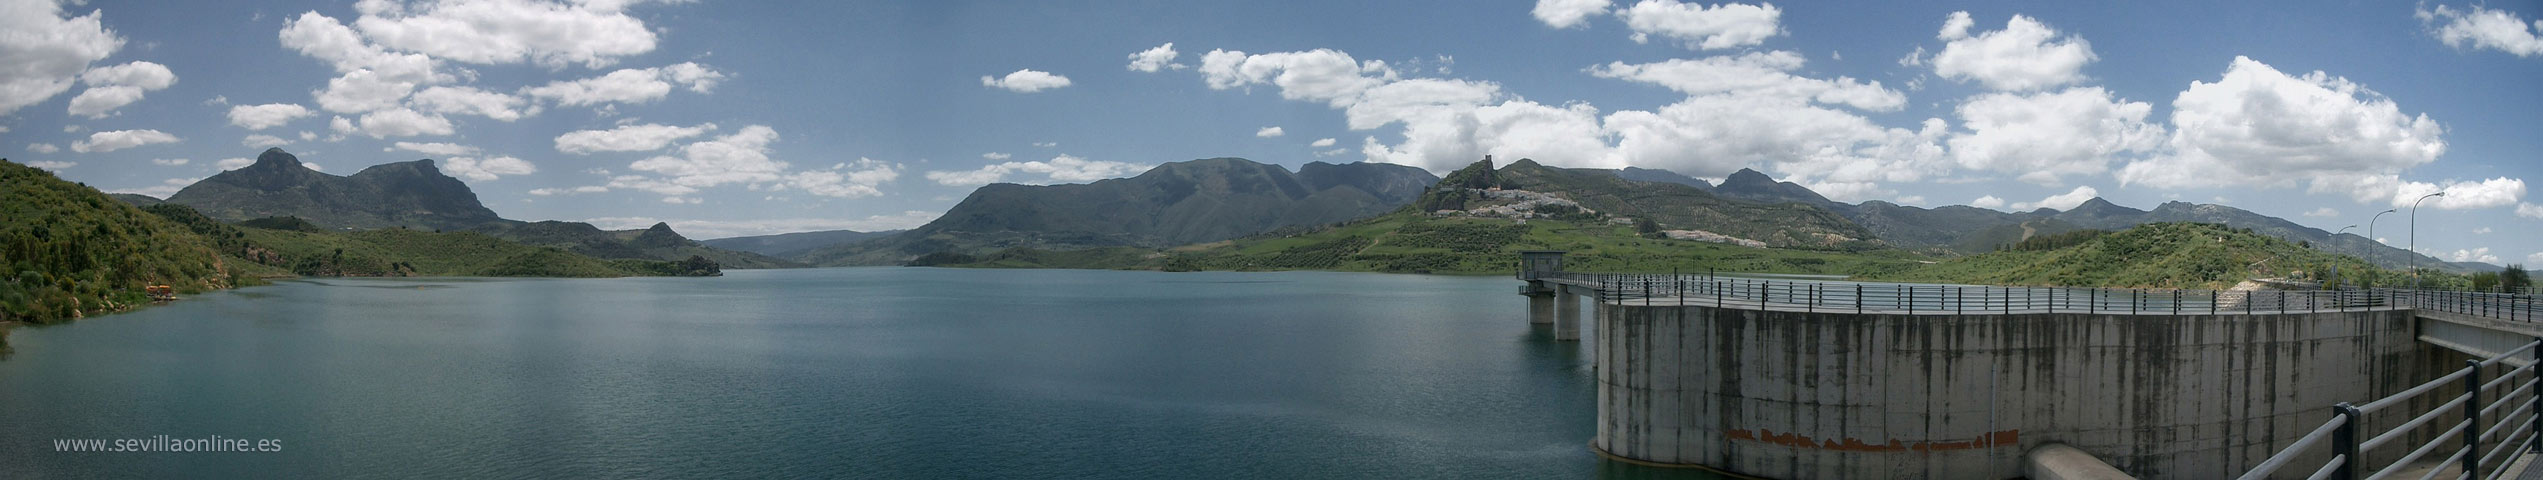 Panoramic images of the reservoir of Zahara-El Gastor in Sierra de Grazalema natural park